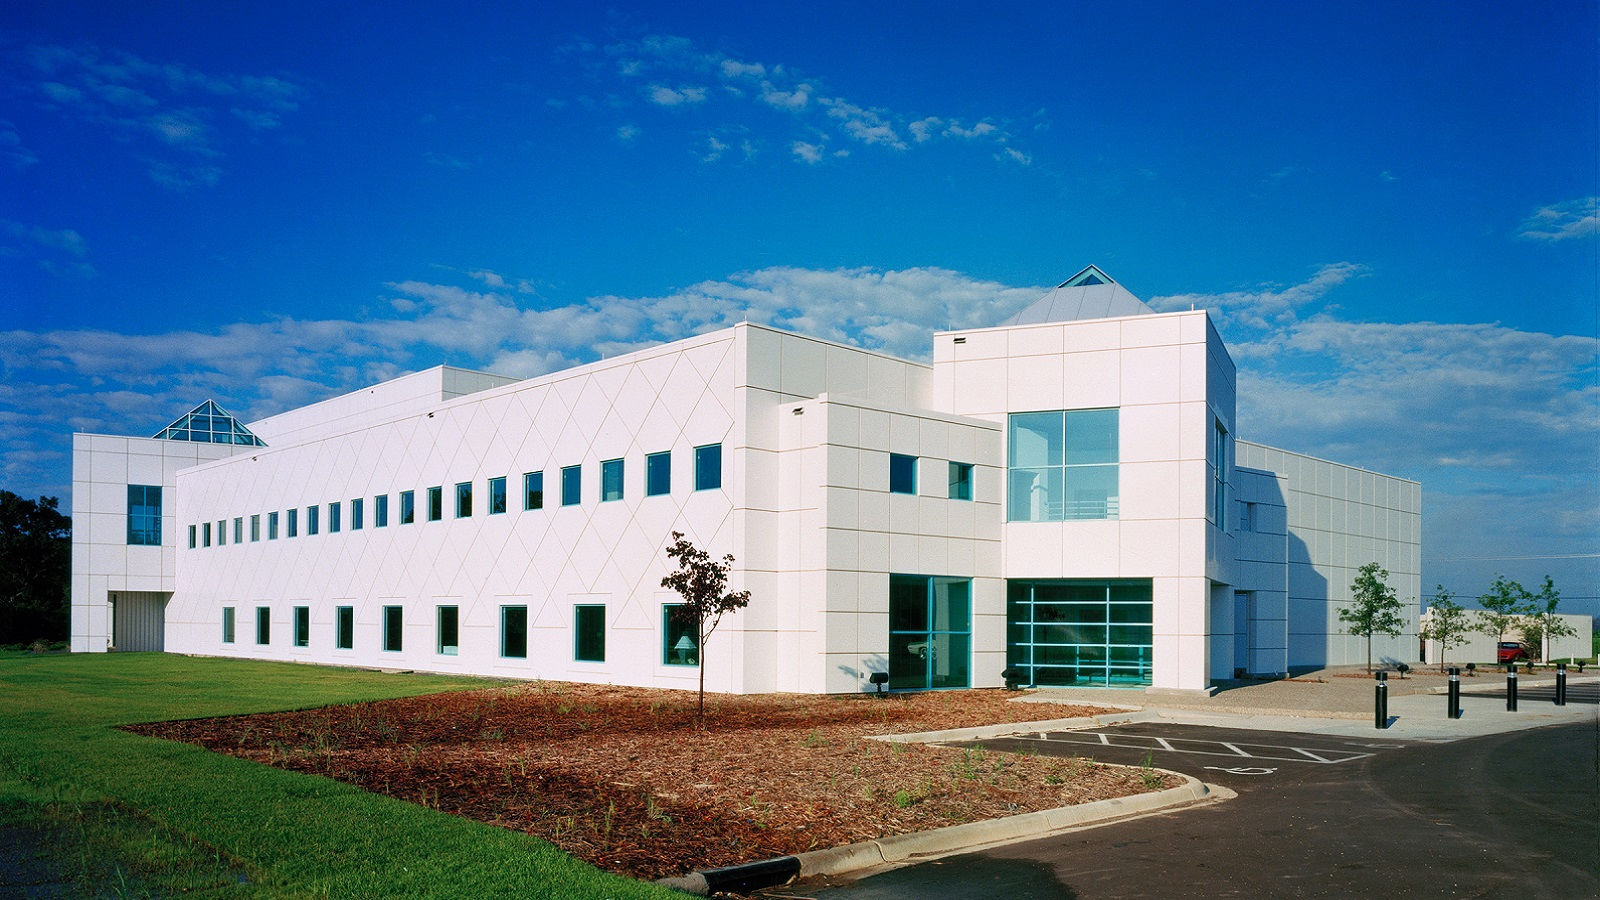 Things to Do - Visit Paisley Park